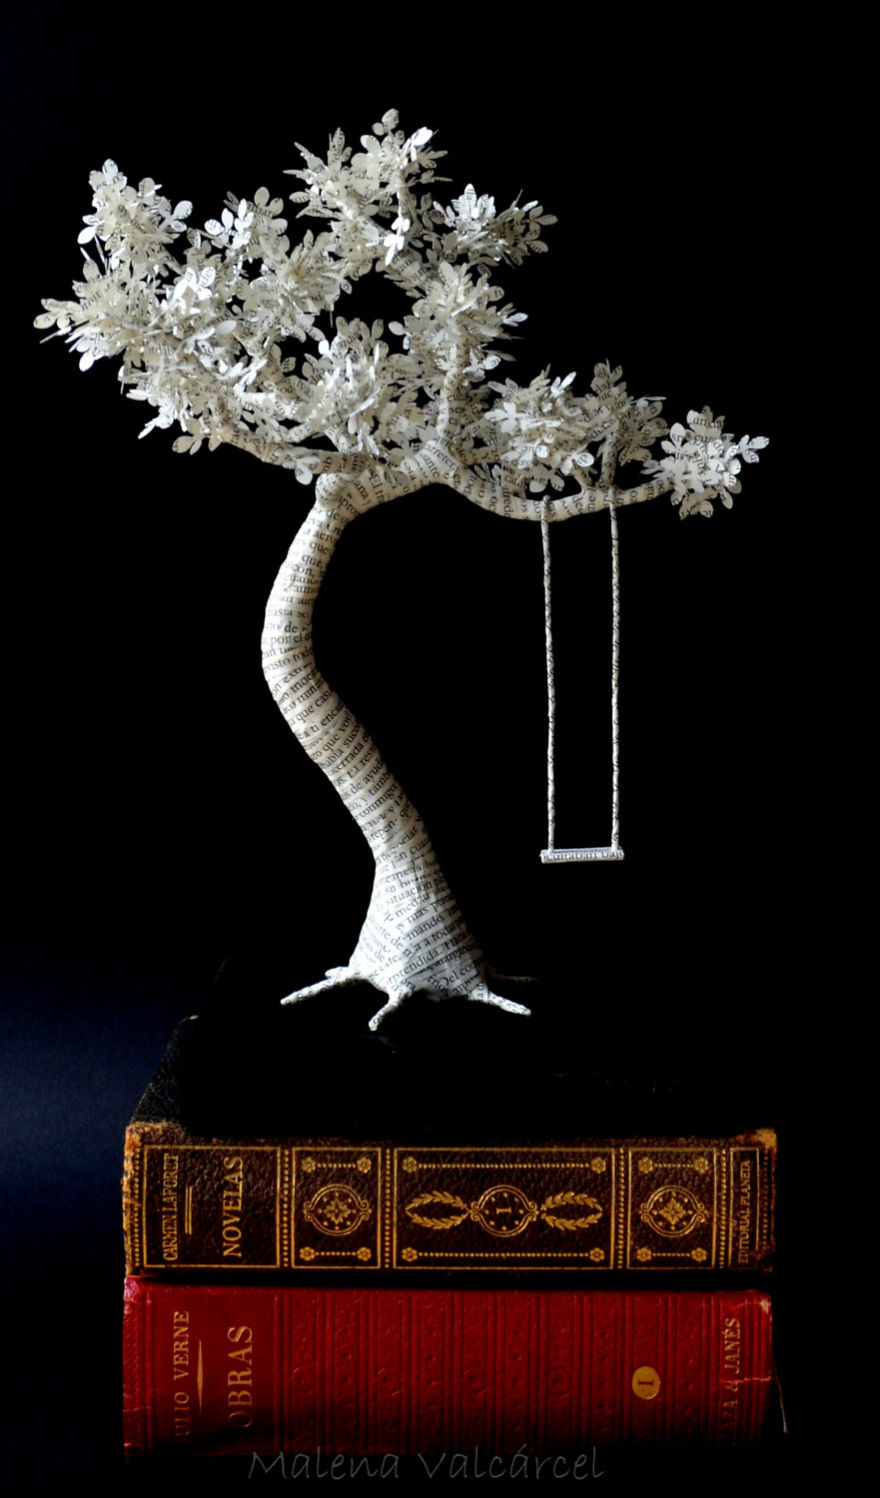 book-sculptures-are-my-passion-i-work-with-paper-to-create-elaborated-forms-57f36535c1450__880